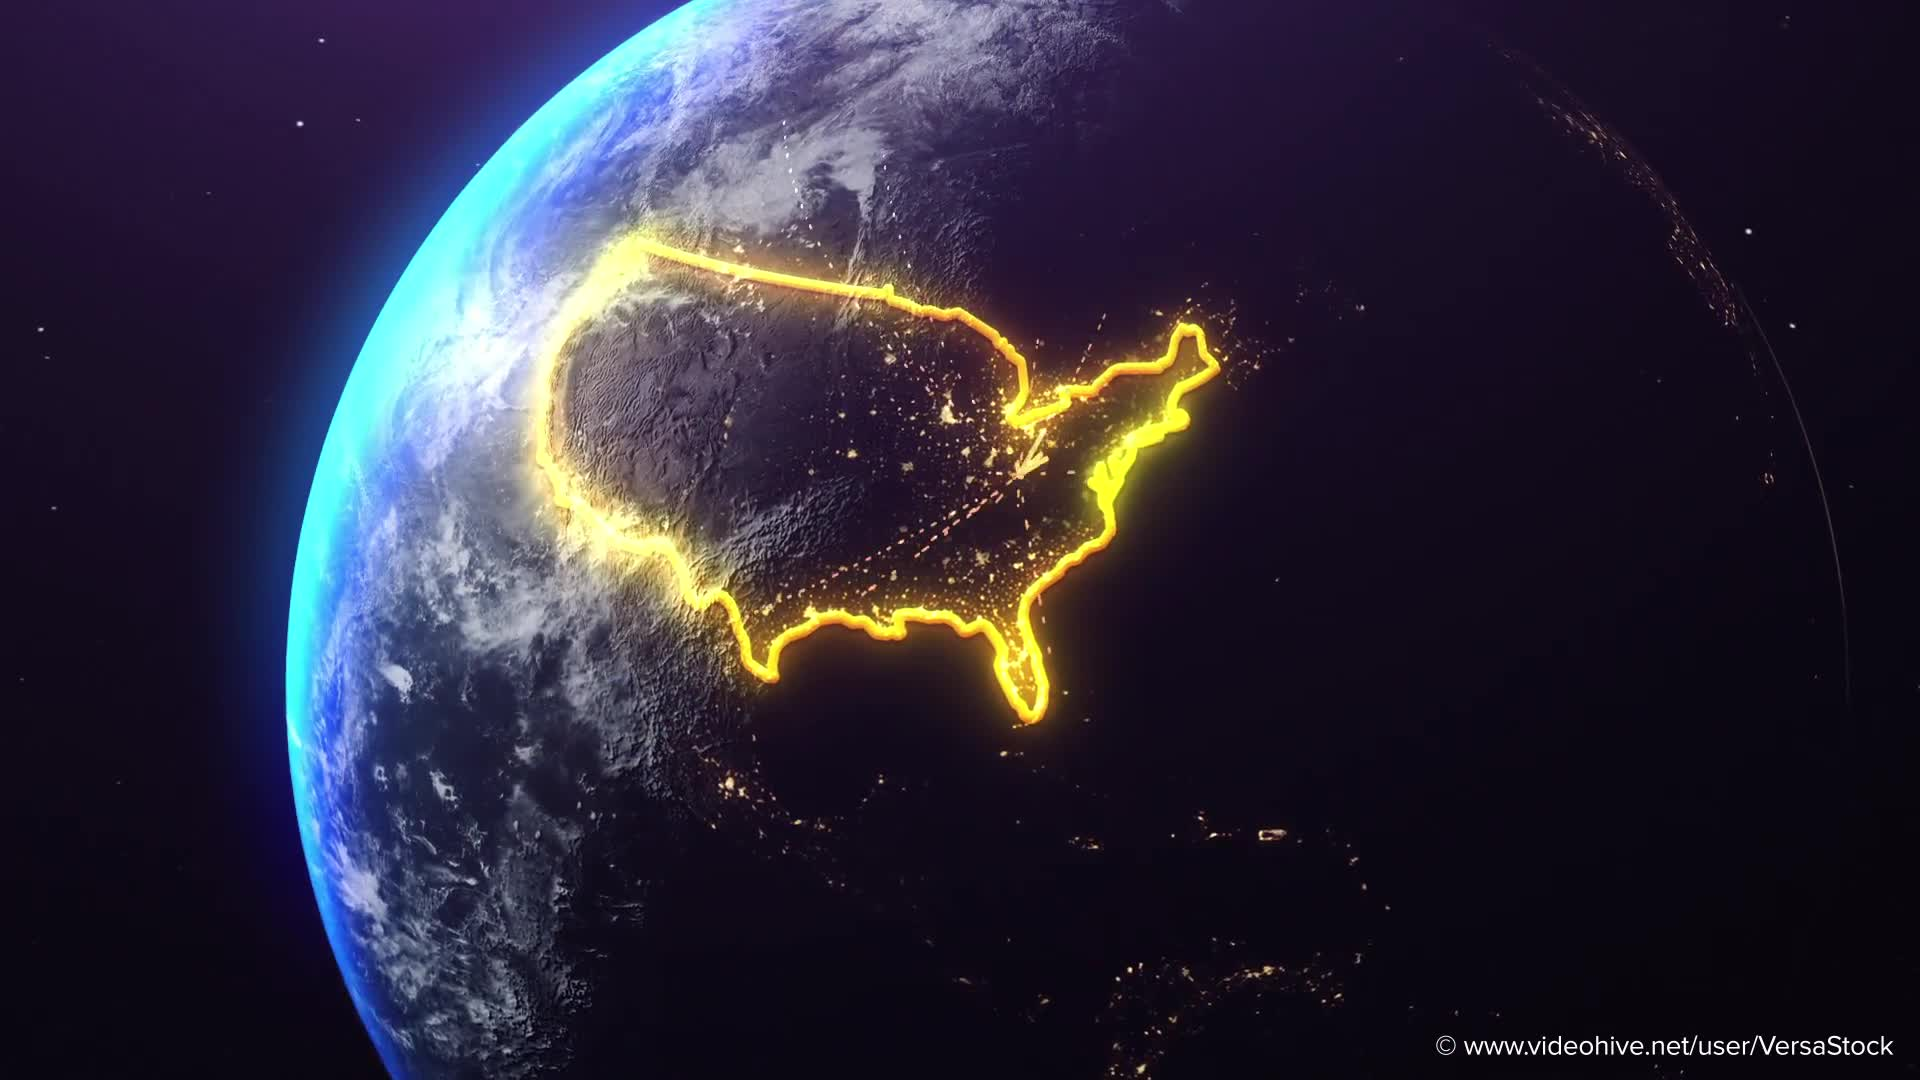 Global Economics From Space Infographics Videohive 25031384 After Effects Image 1